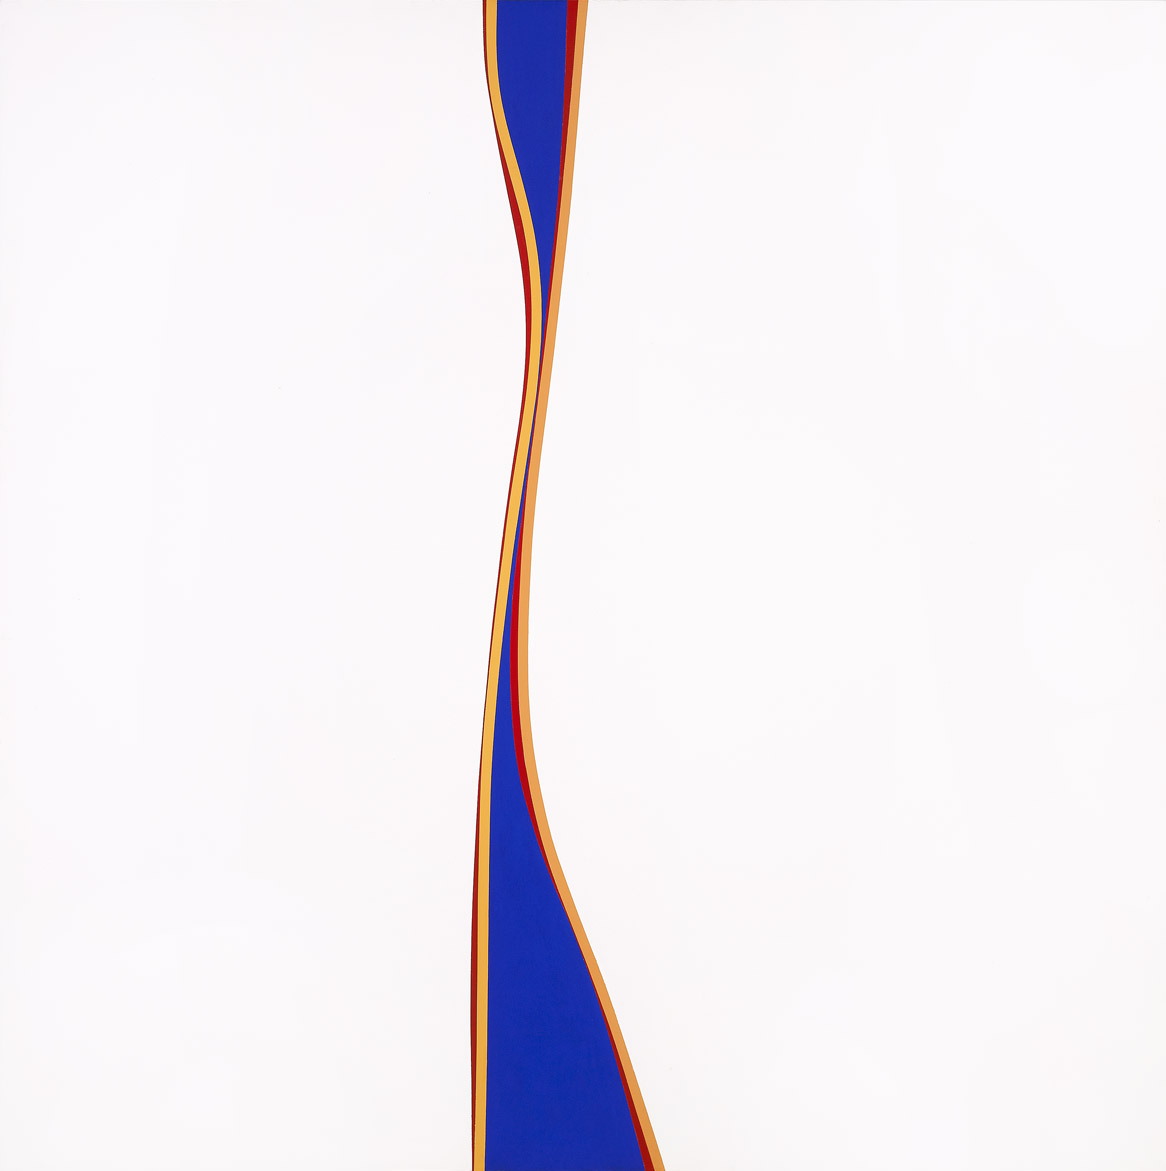 Untitled (January 30) , 1971  acrylic on canvas 60 x 60 inches; 152.4 x 152.4 centimeters